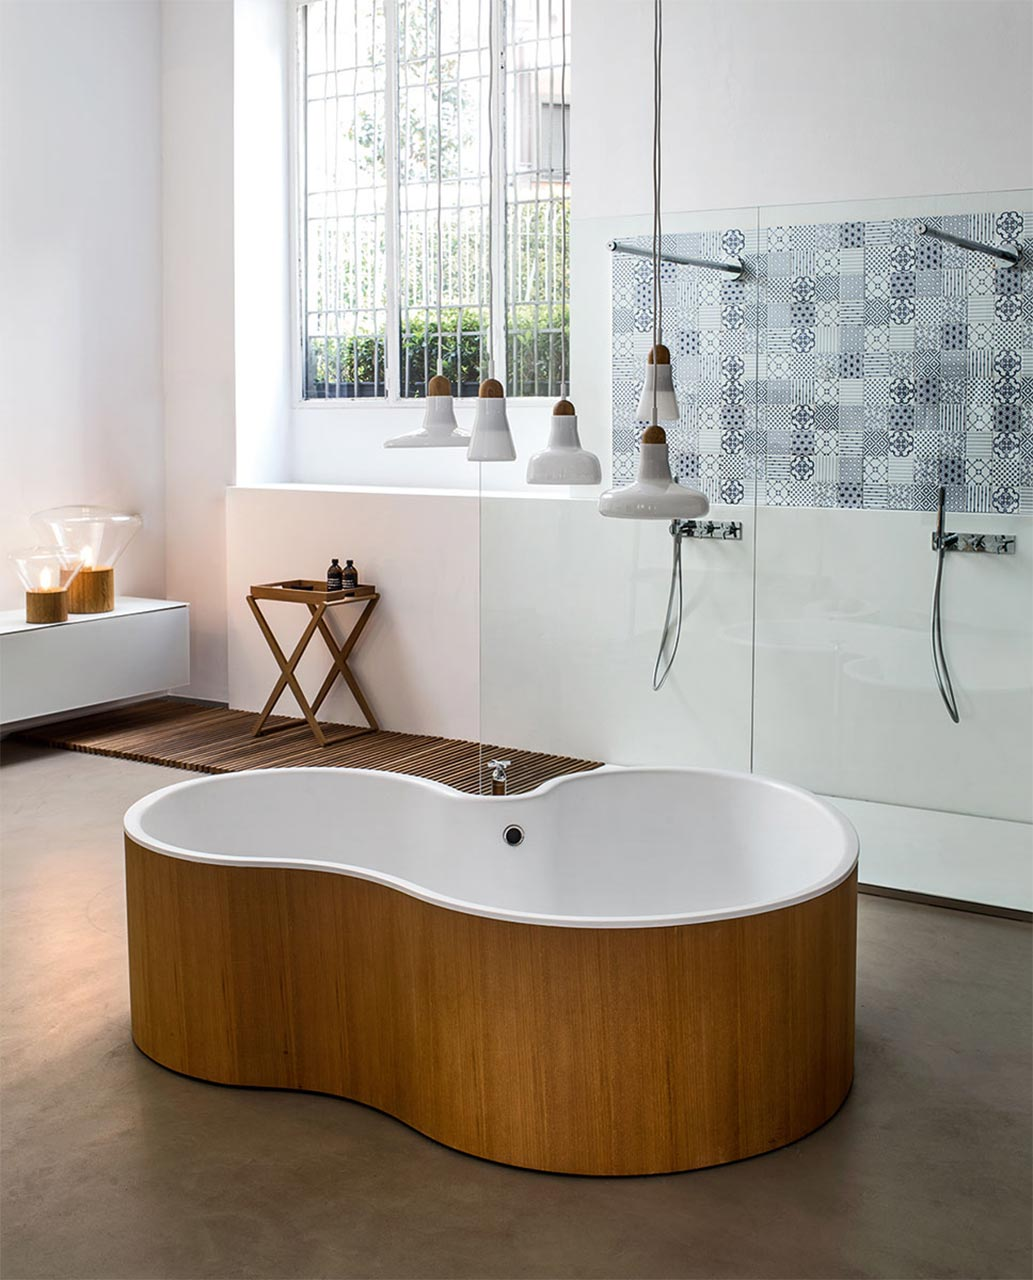 Agape DR bathtub 4